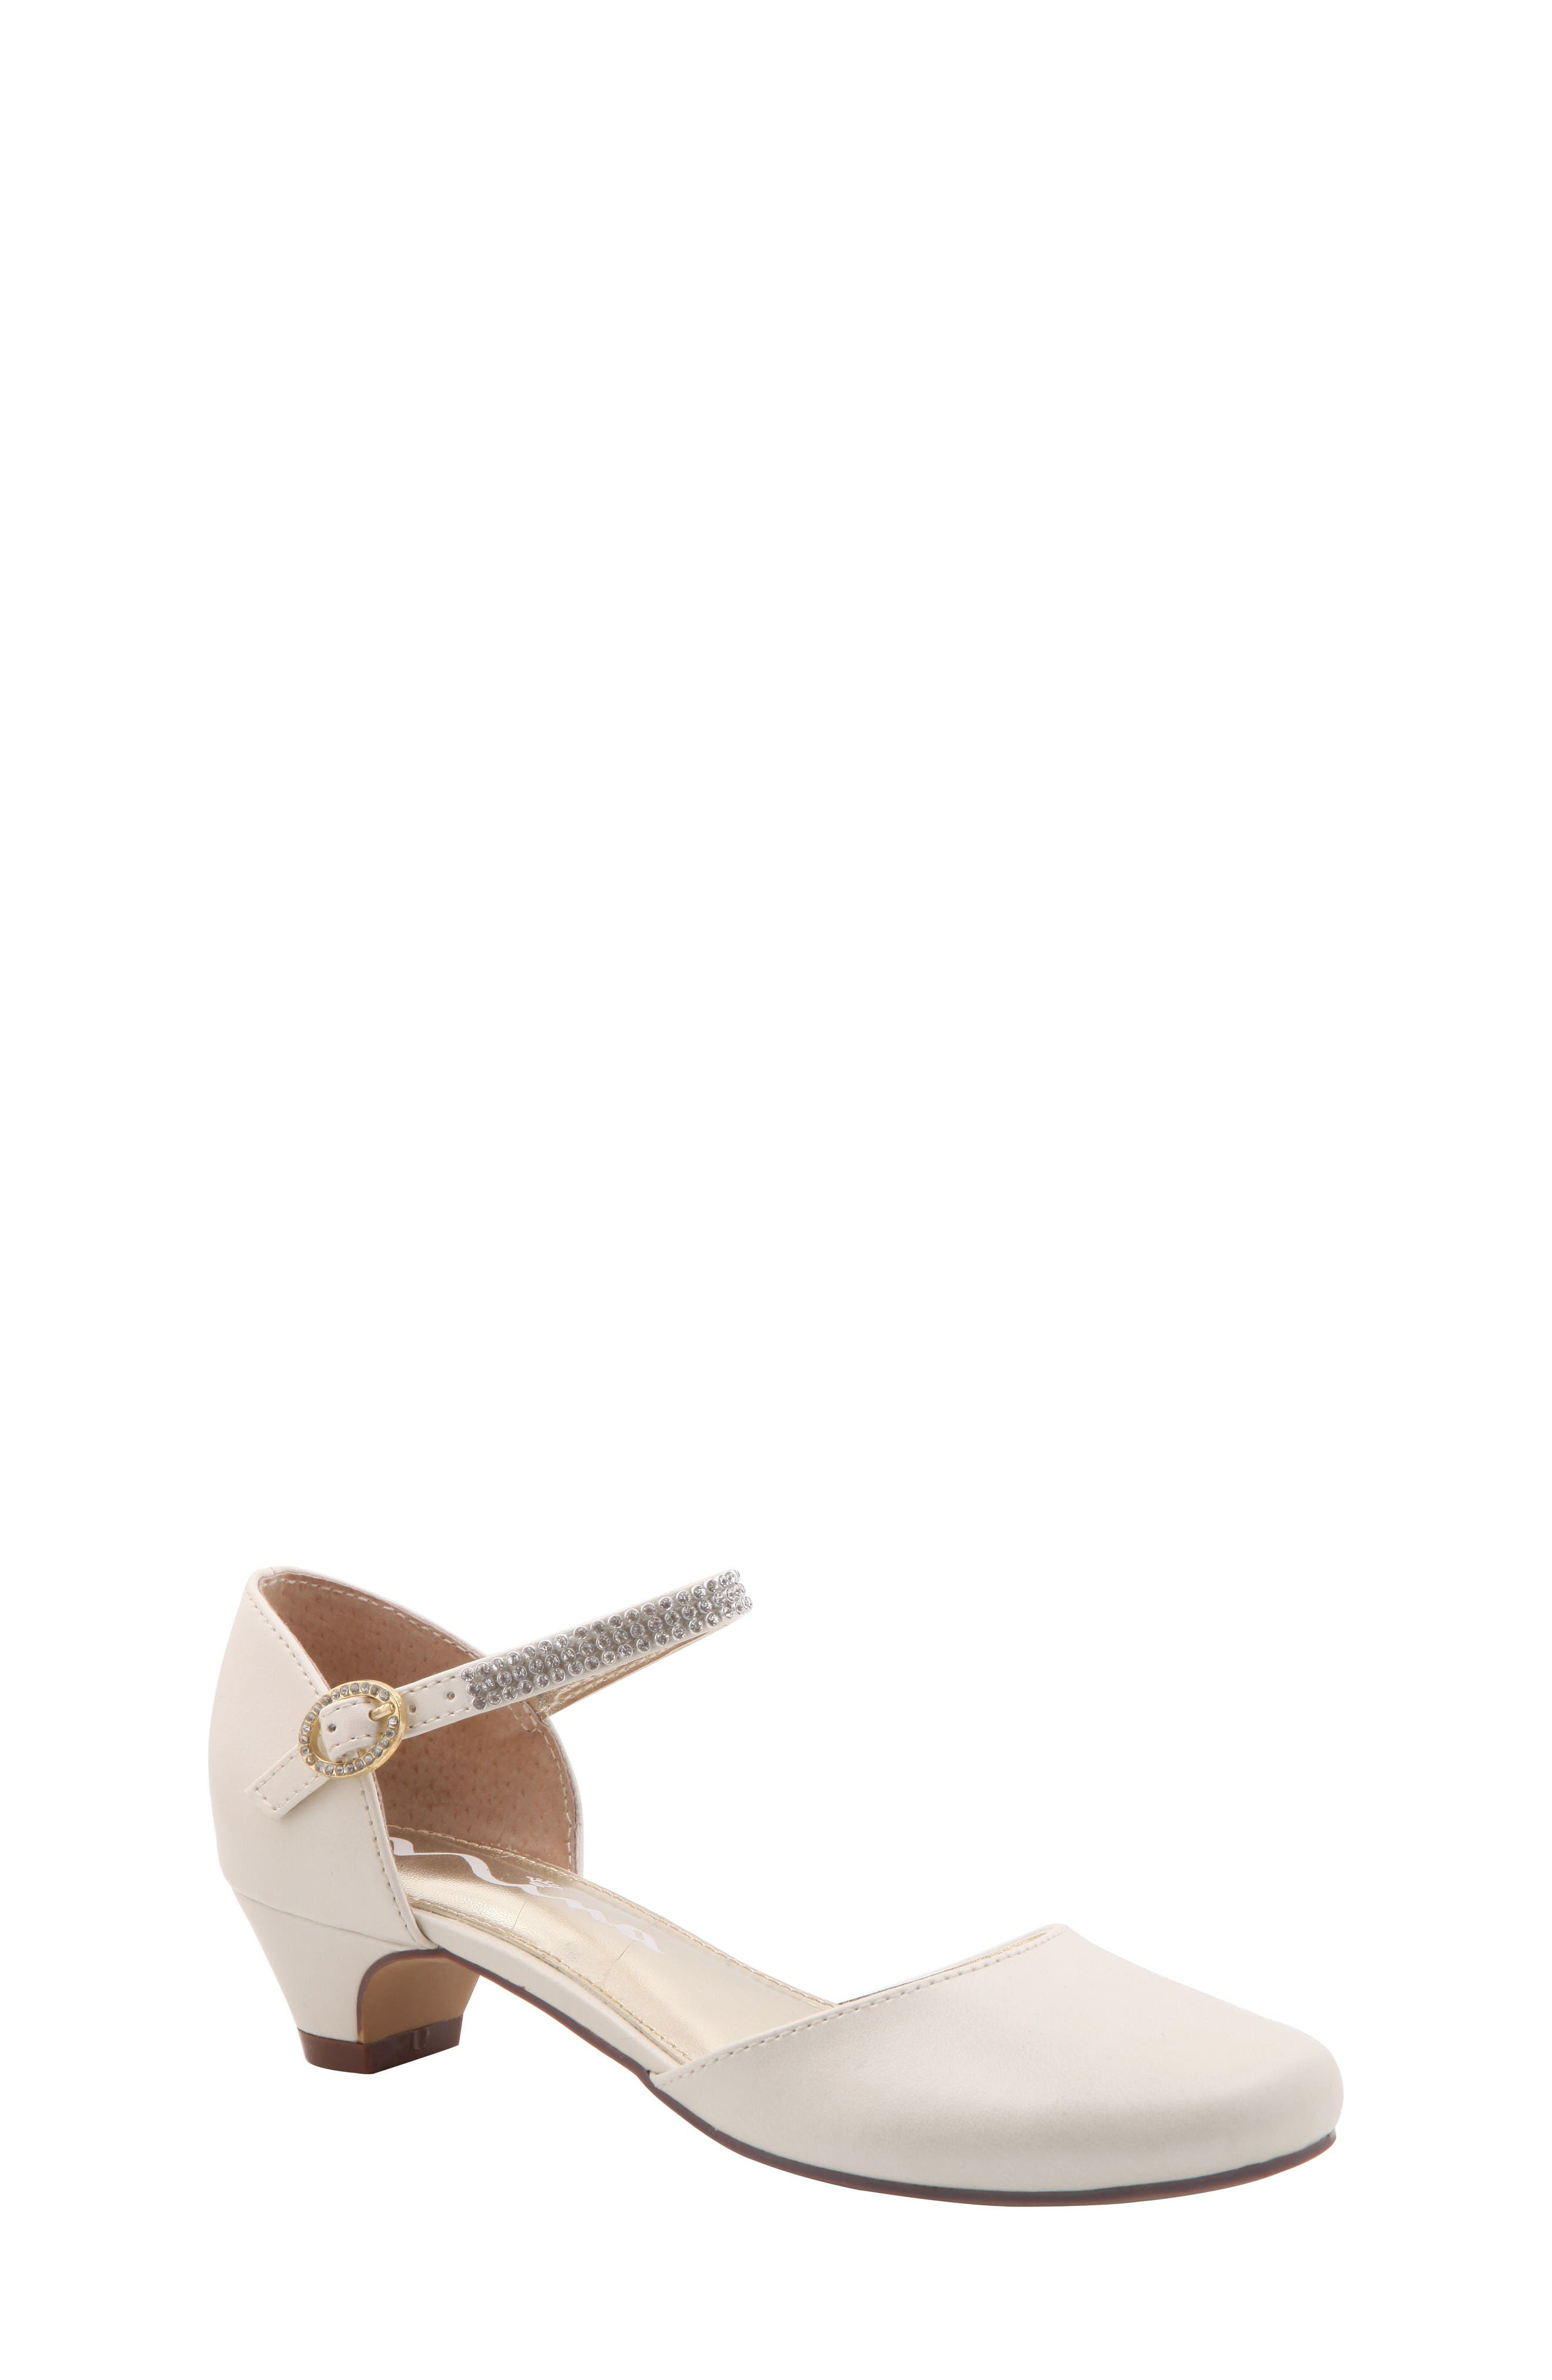 Alternate Image 1 Selected - Nina Cera Low Embellished Pump (Toddler, Little Kid & Big Kid)